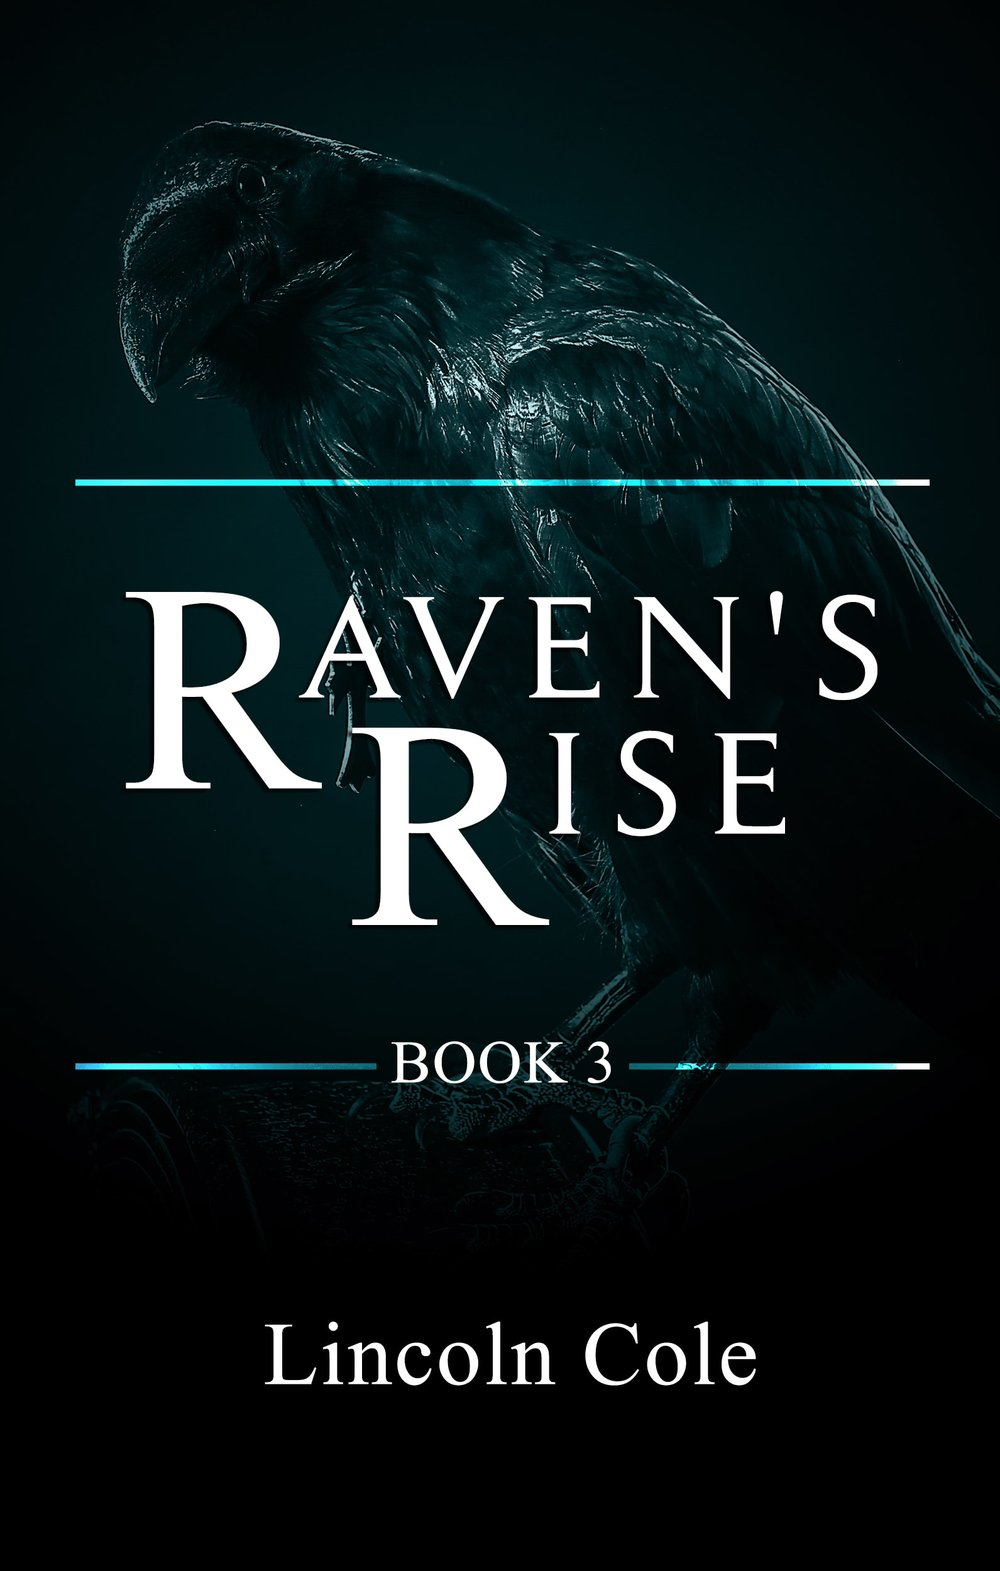 Raven's Rise - Everything has come crashing down after the events of Raven's Fall: barely anyone is left standing and the Church is blaming Abigail for the fallout. Raven's Risebegins after the explosive ending of Raven's Fall.Haatim and Dominick are struggling to understand how their worlds were flipped upside down so completely, but they are running out of time. The threat that began in the mountains is far from over. They need to find a way to survive what comes next and put a stop to the cult that is threatening their existence before it is too late.